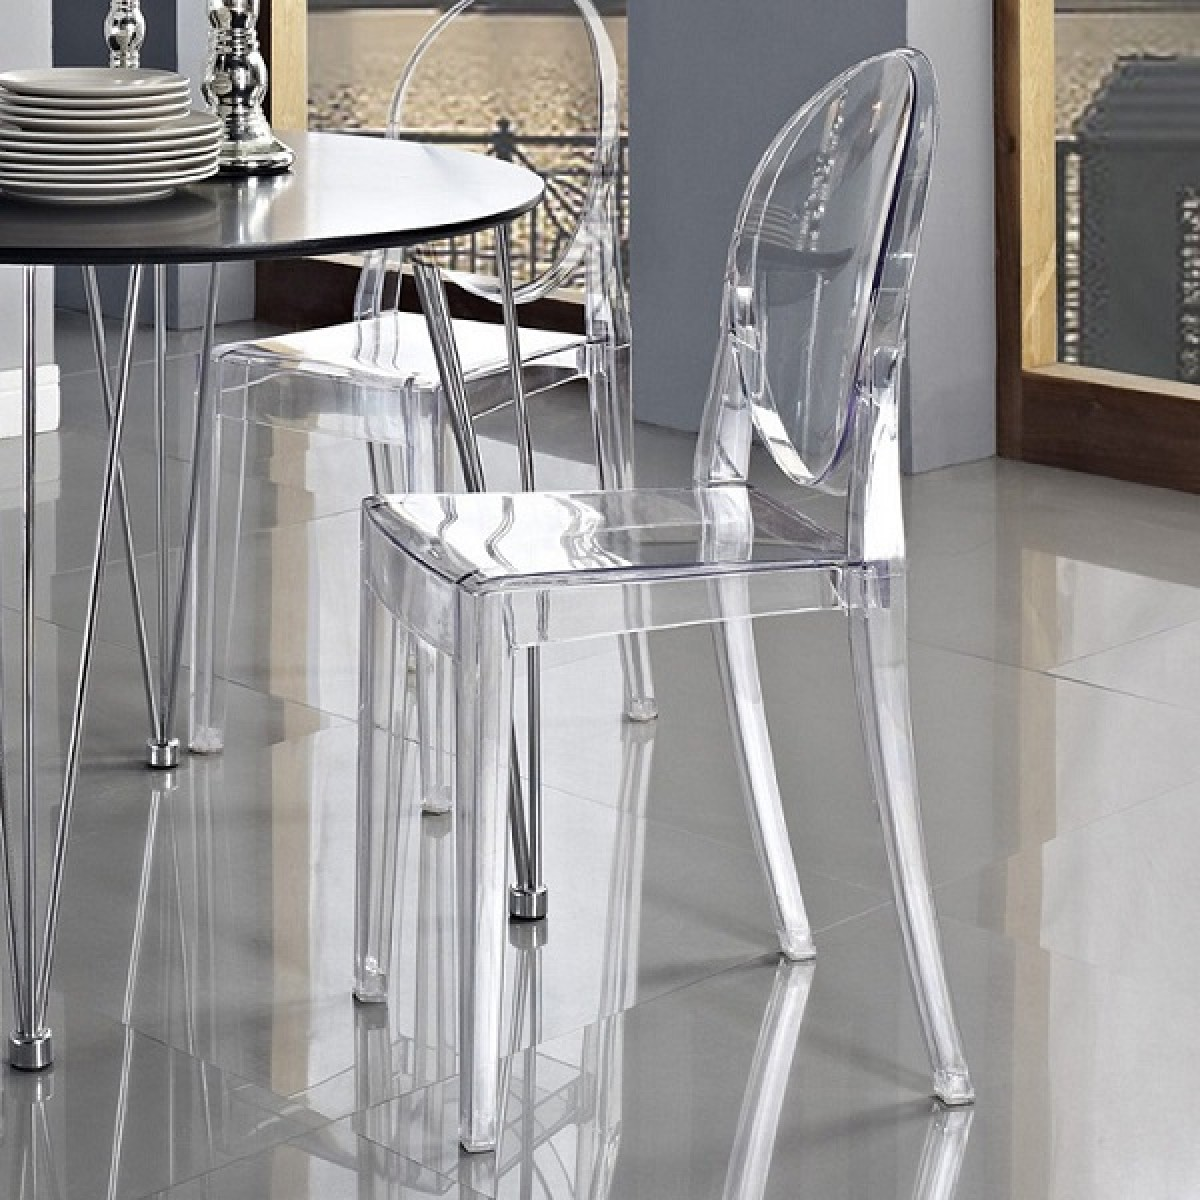 & Set of 4 Victoria Style Ghost Dining Chair Clear Color islam-shia.org